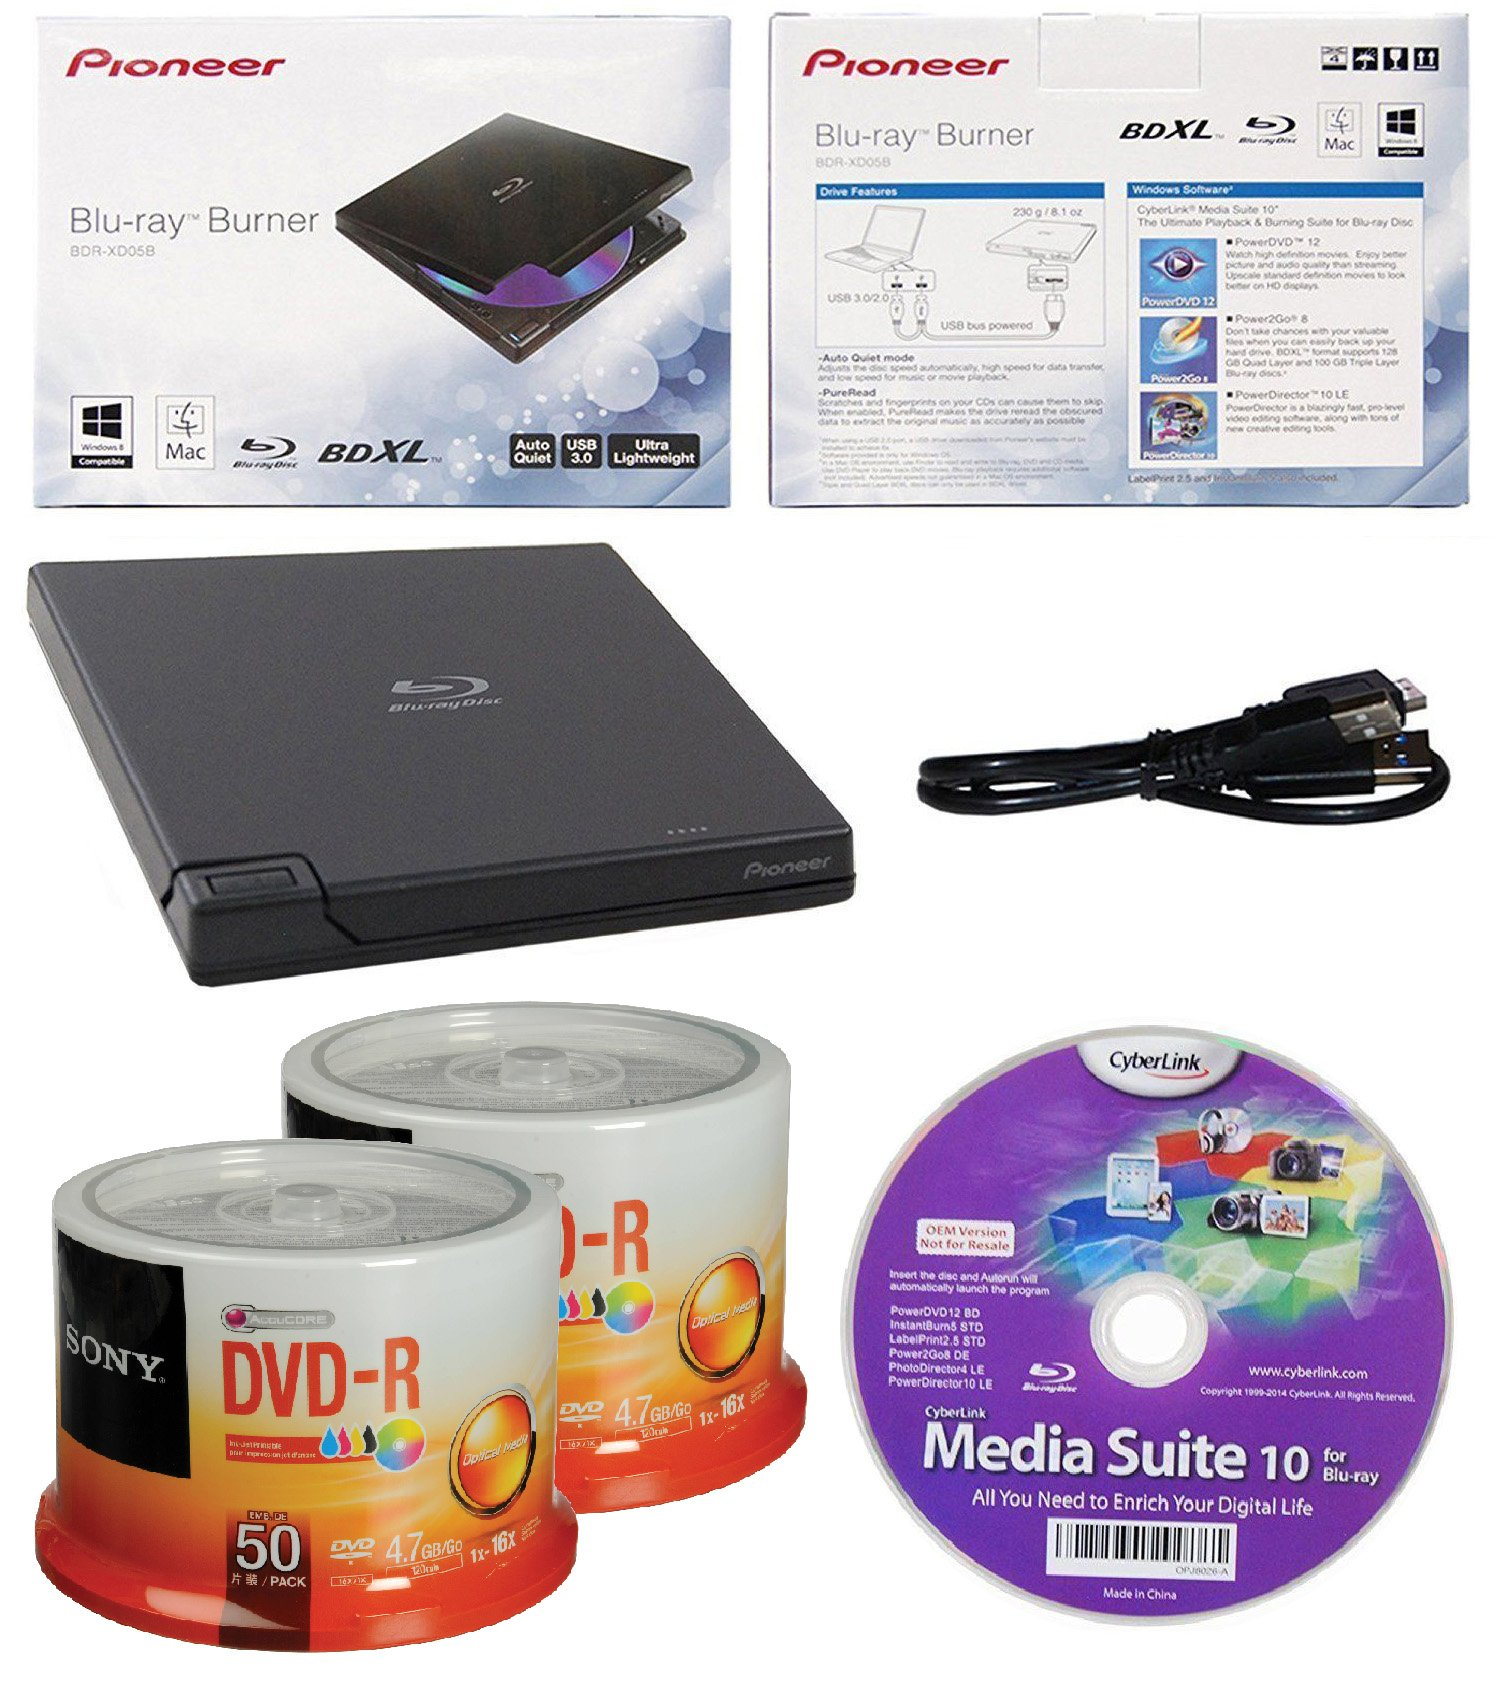 Pioneer 6x BDR-XD05B Ultra Lightweight External Blu-ray BDXL Burner, Cyberlink Software and USB Cable Bundle with 100pk DVD-R Sony Accucore 4.7GB 16X White Inkjet Printable